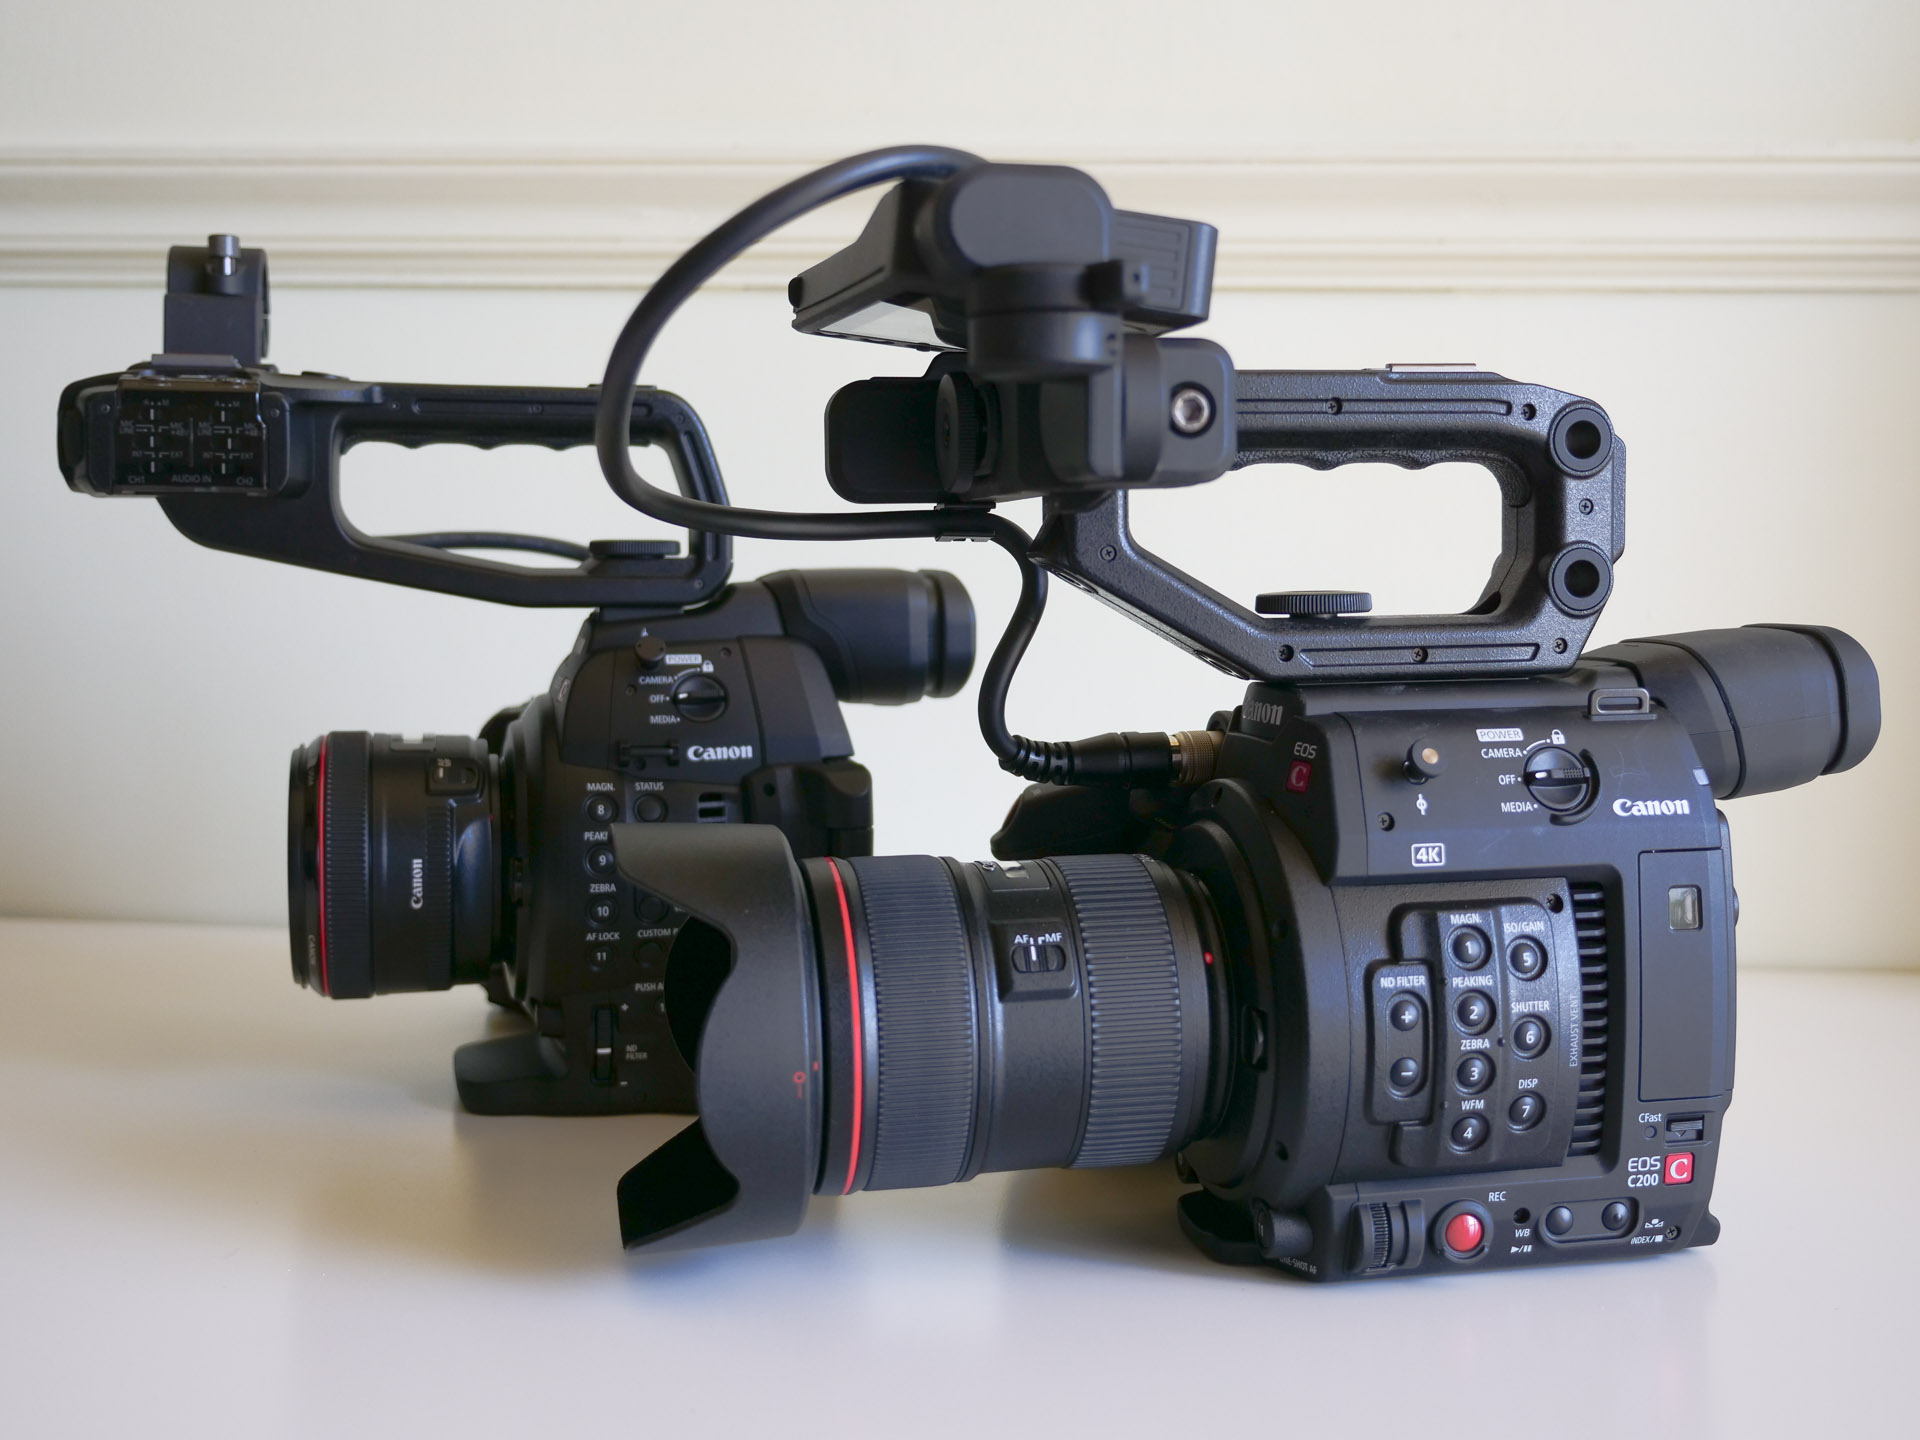 Canon C200 v the competition: costs, specs, is it right for you